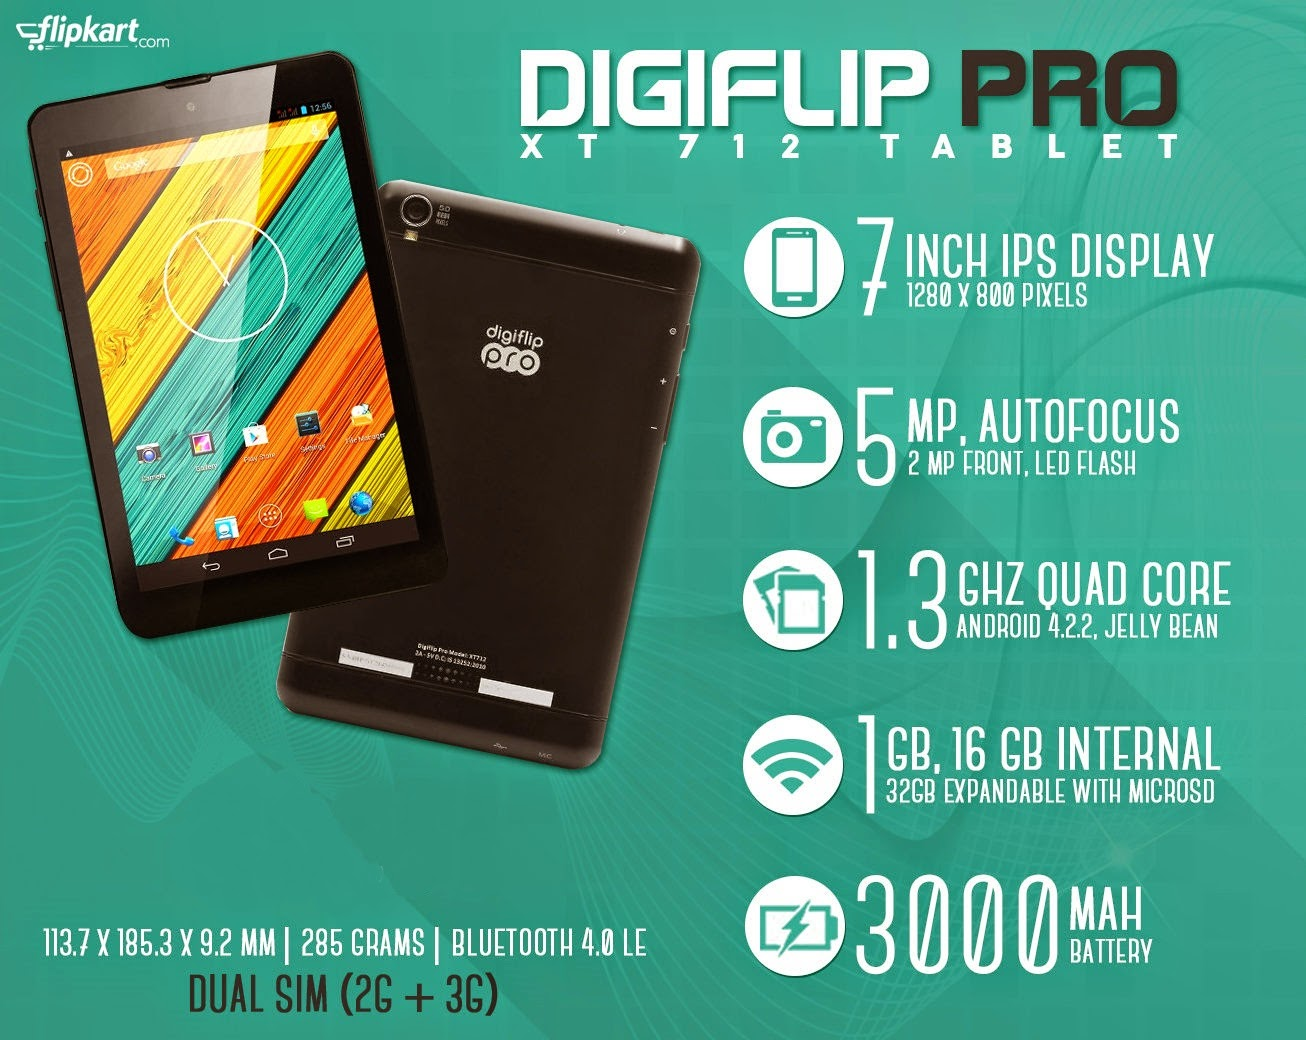 Latest Value For Money Tablet Digiflip Pro Xt811 Online Shopping Hp Slate 7 Voicetab 16 Gb 3g Silver Price